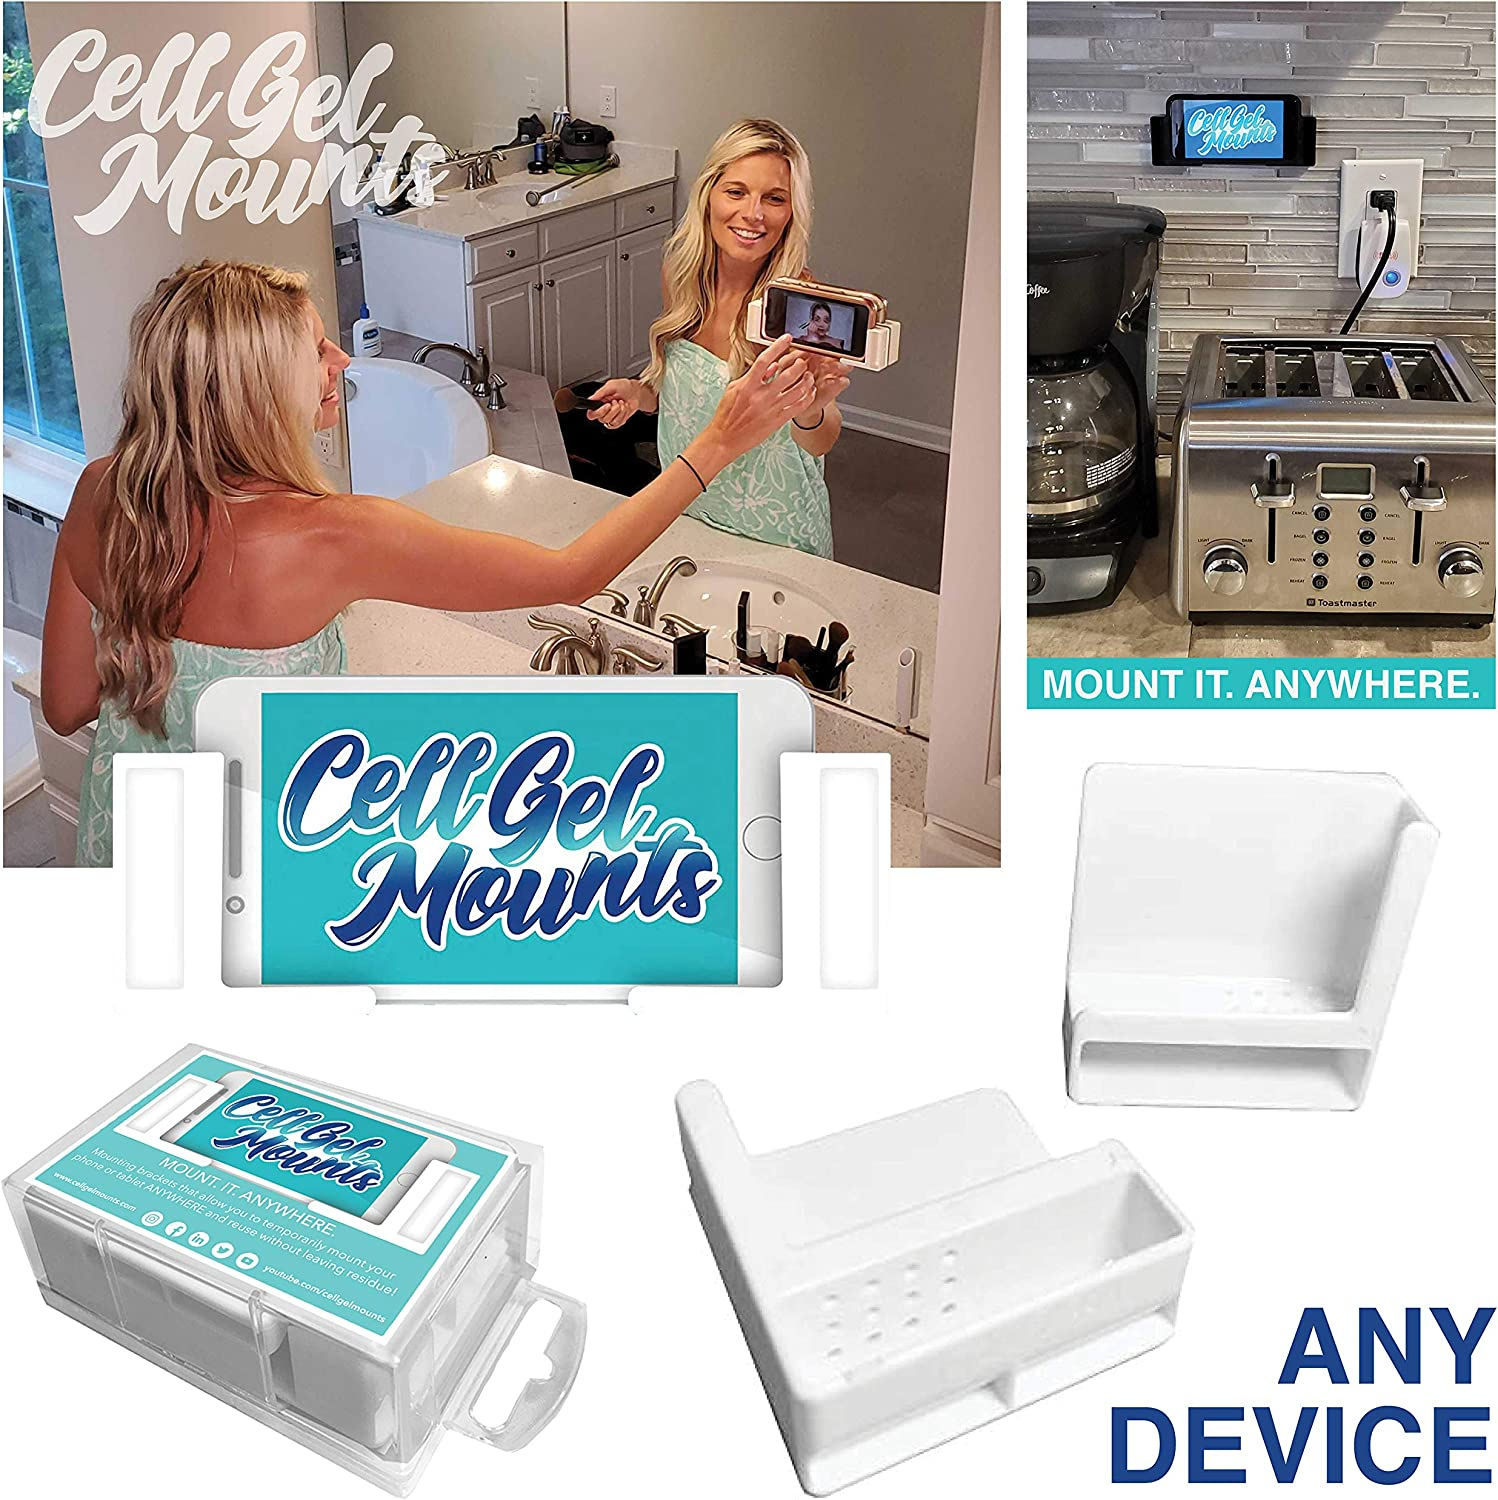 Cell Gel Mounts   Temporary Mounting Brackets for Cell Phone or Tablet   Tablet and Cell Phone Holder   No Residue   Most Surfaces   Wall, Shower, Window, Tile, Wood   for Most iPhone, iPad, Samsung